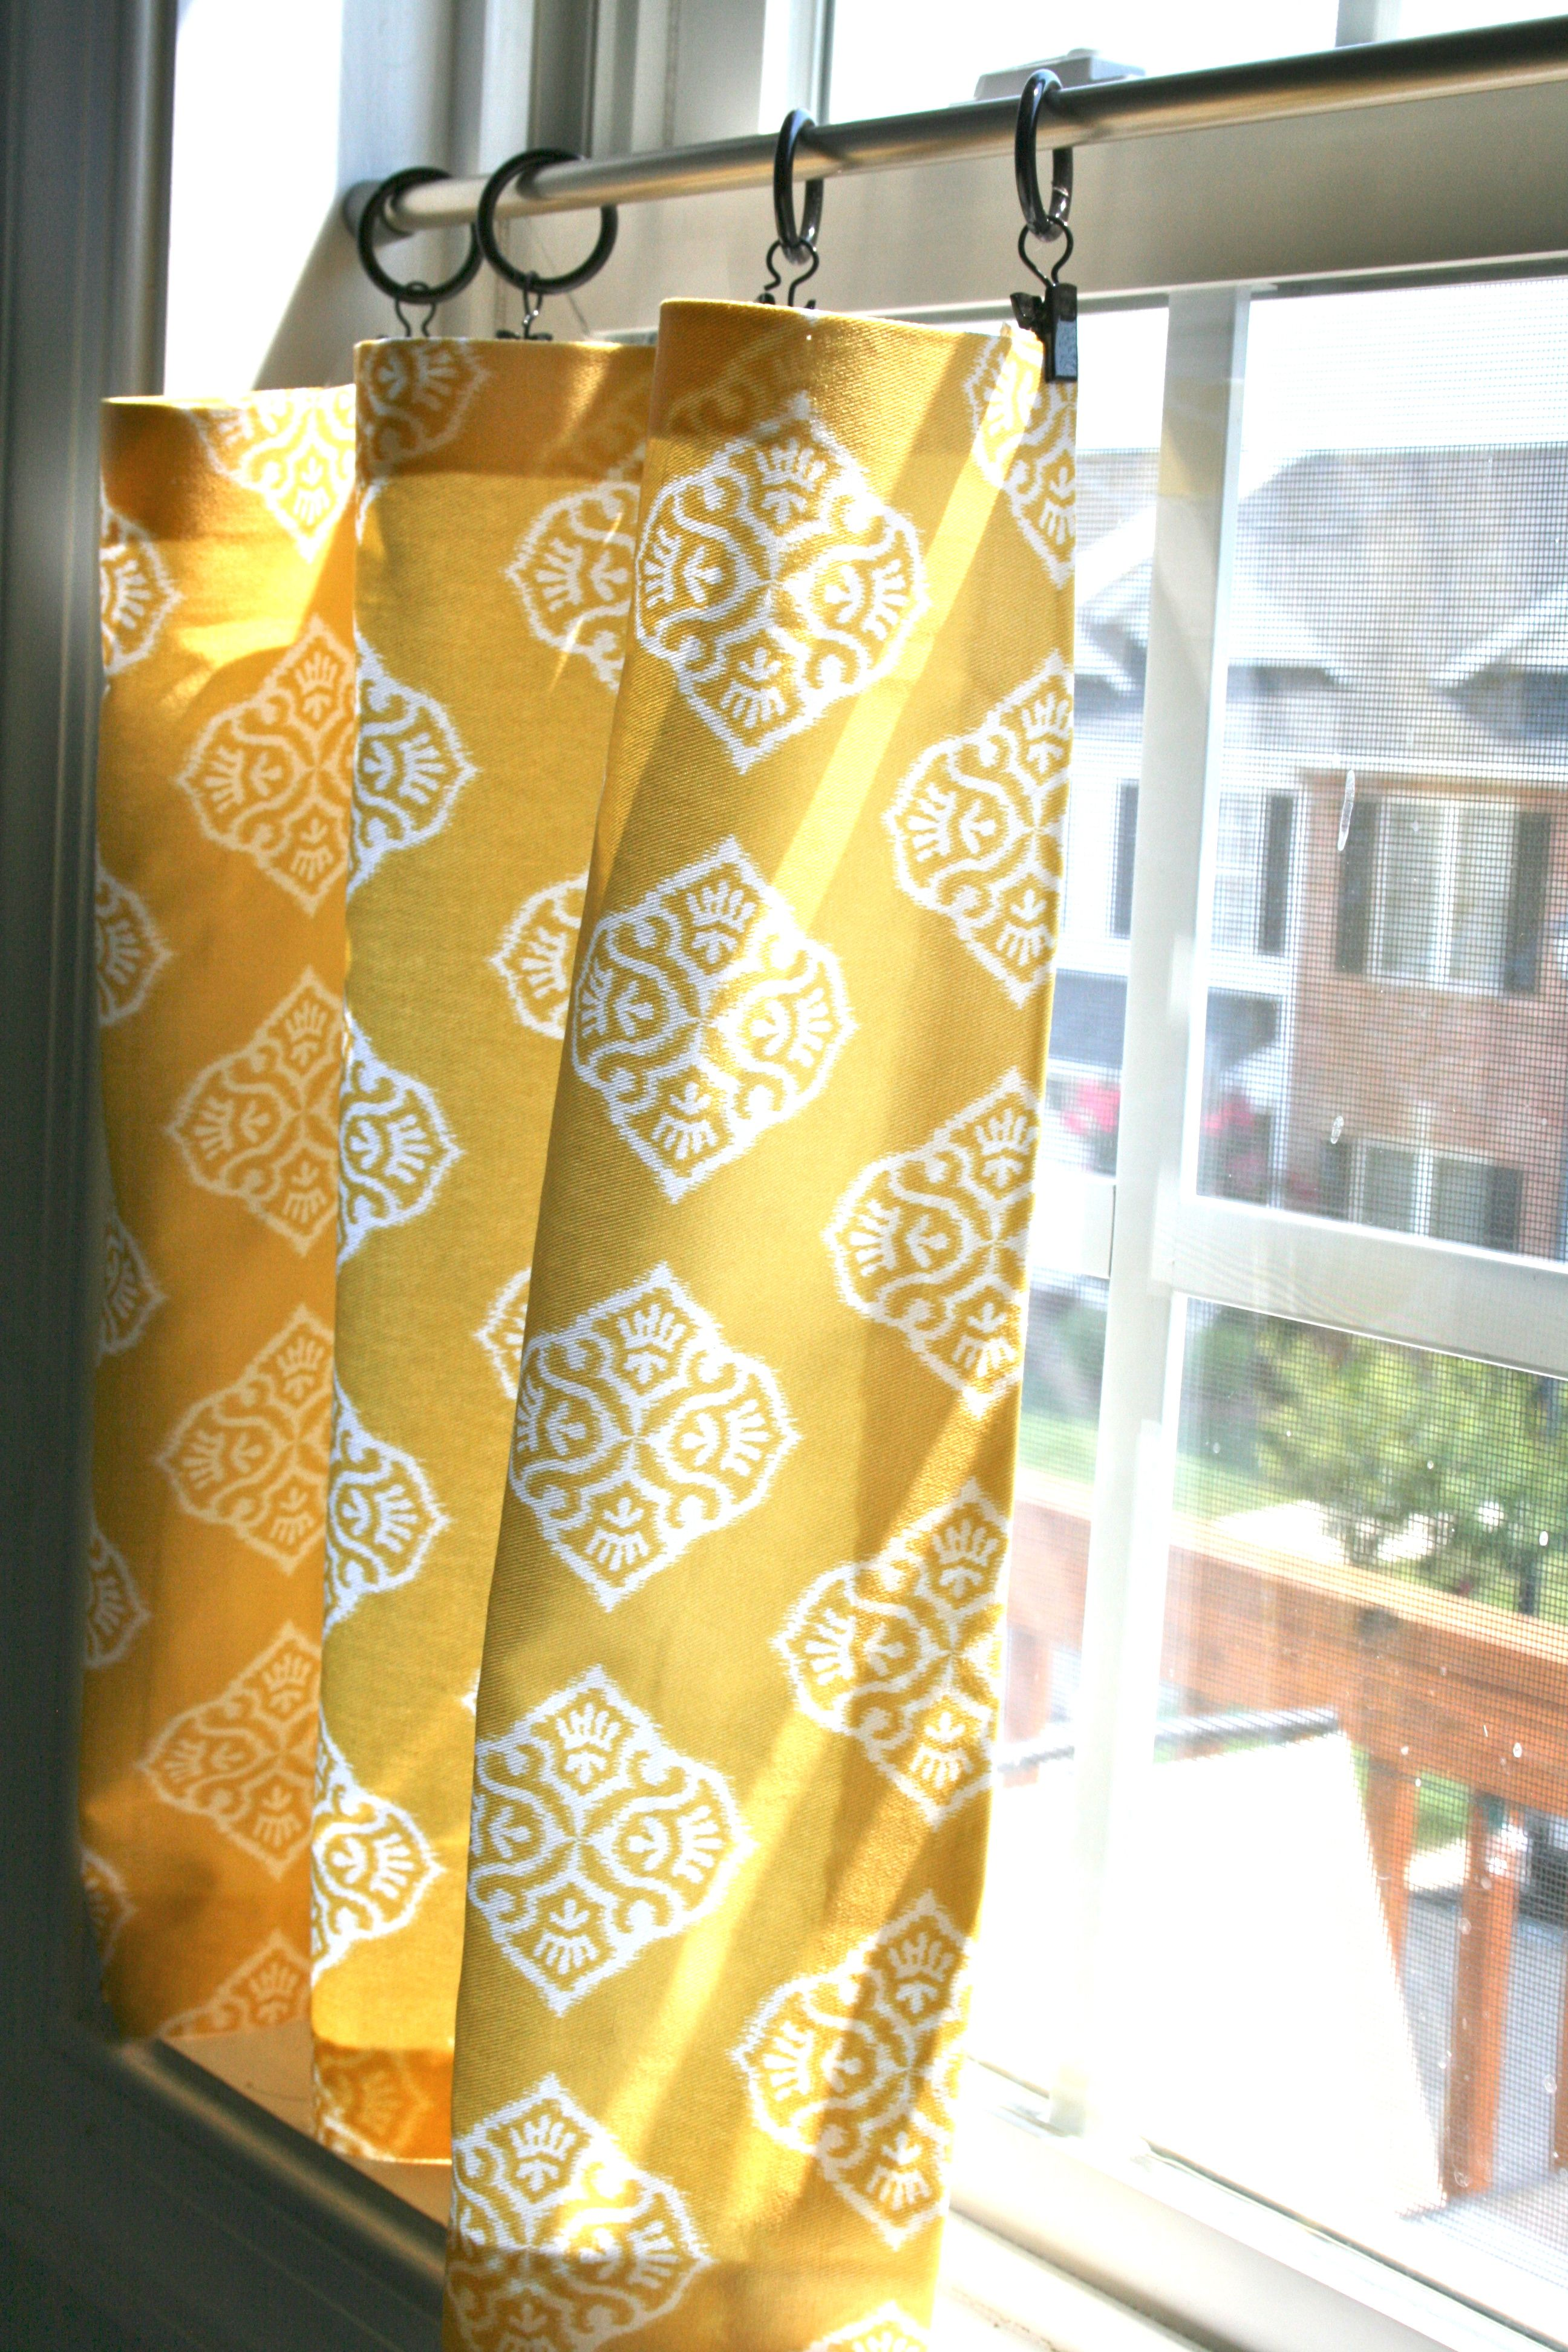 Window coverings to block sun  pinspiration monday no sew cafe curtains reduce sun while